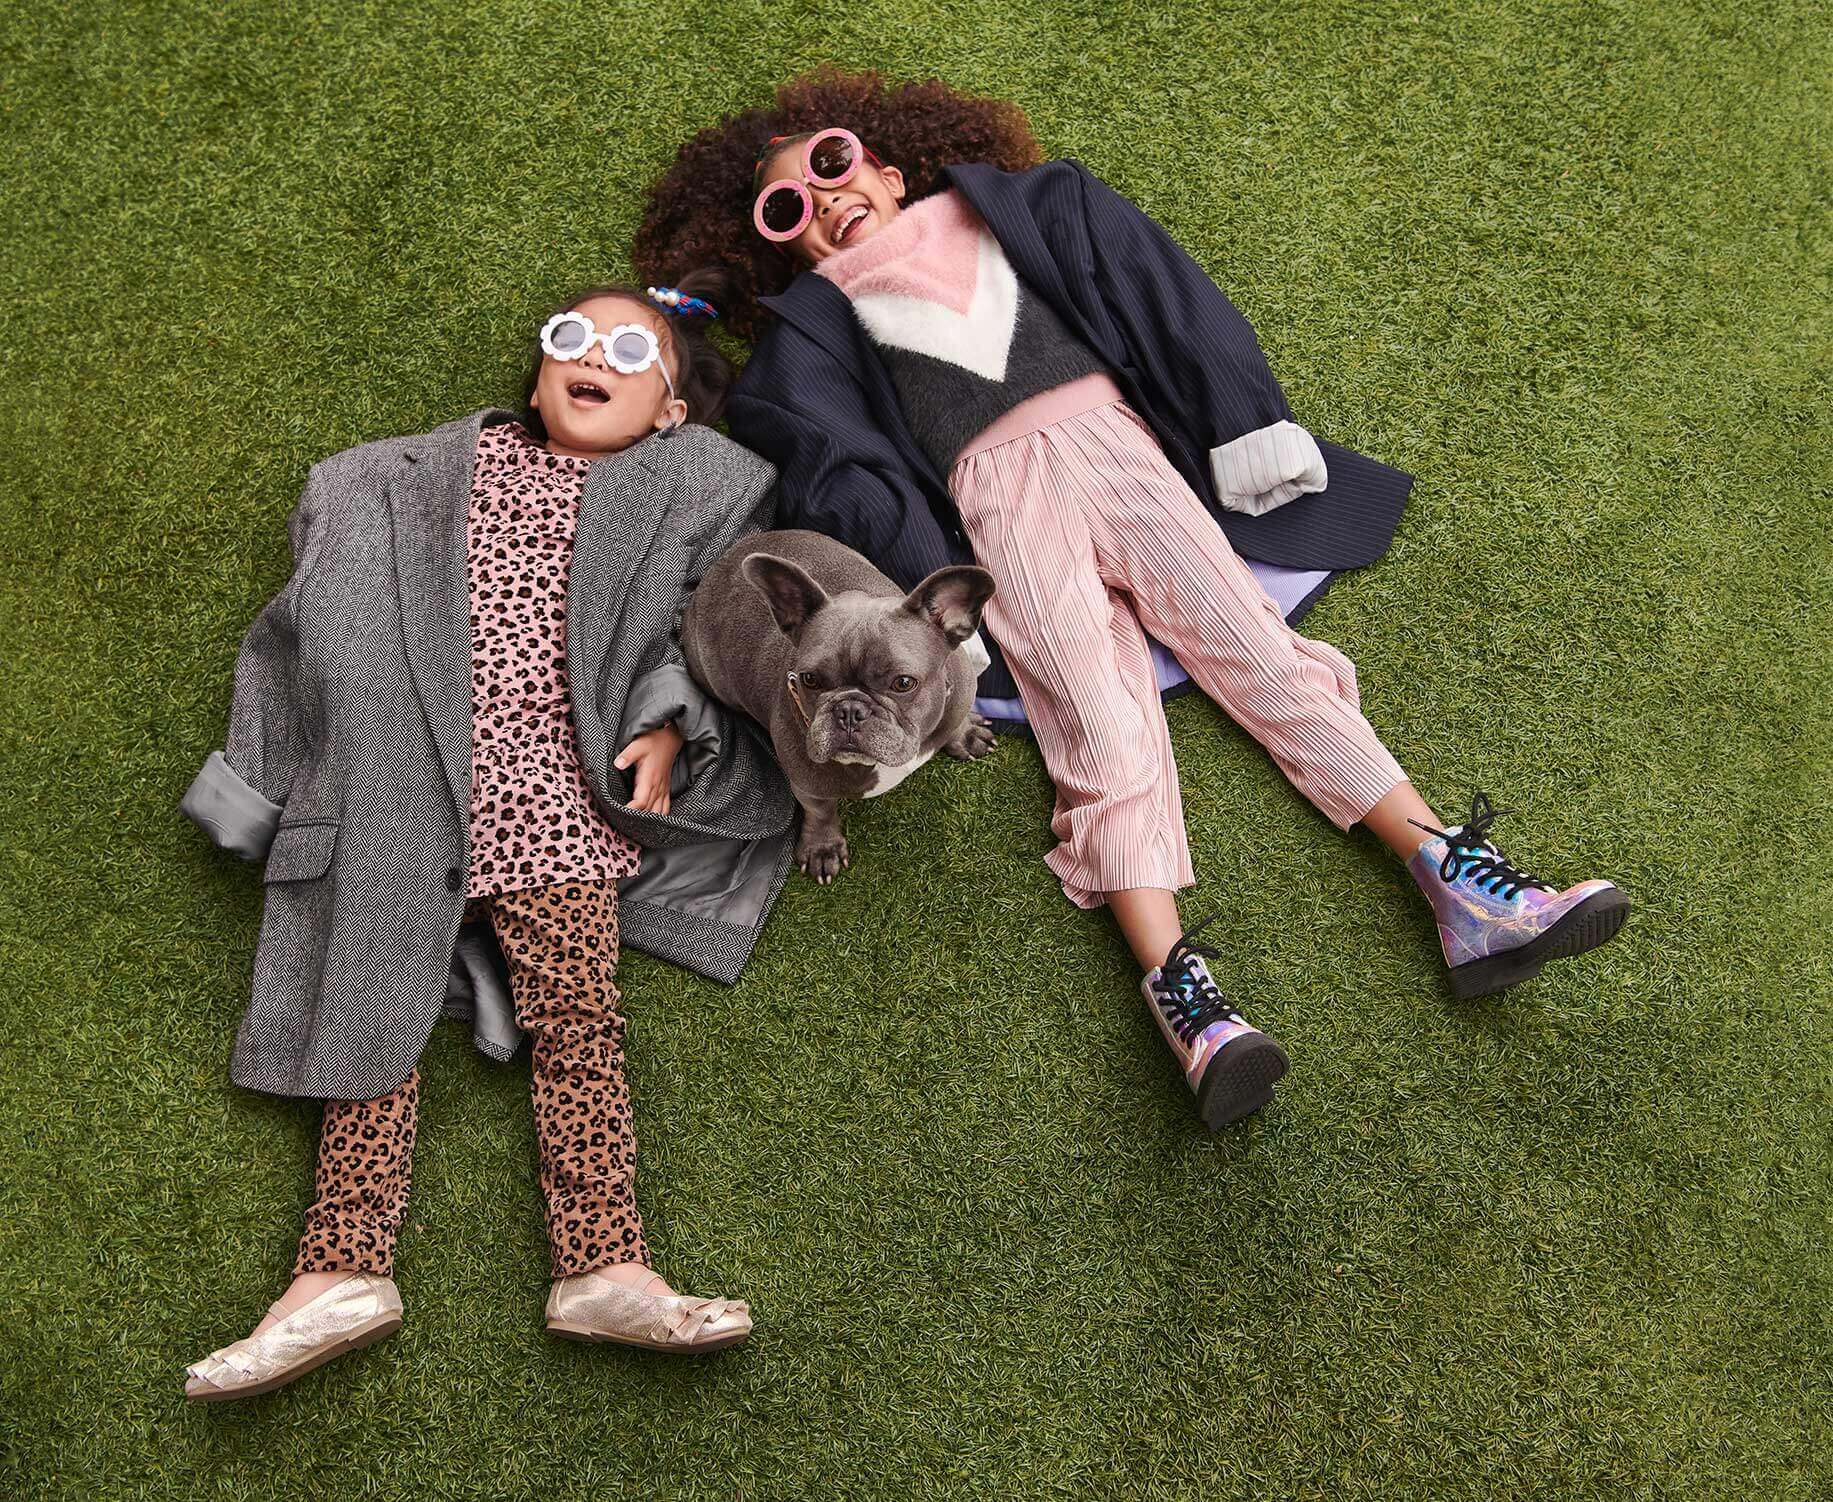 Kids with sunglasses laying on the lawn with a french bulldog.